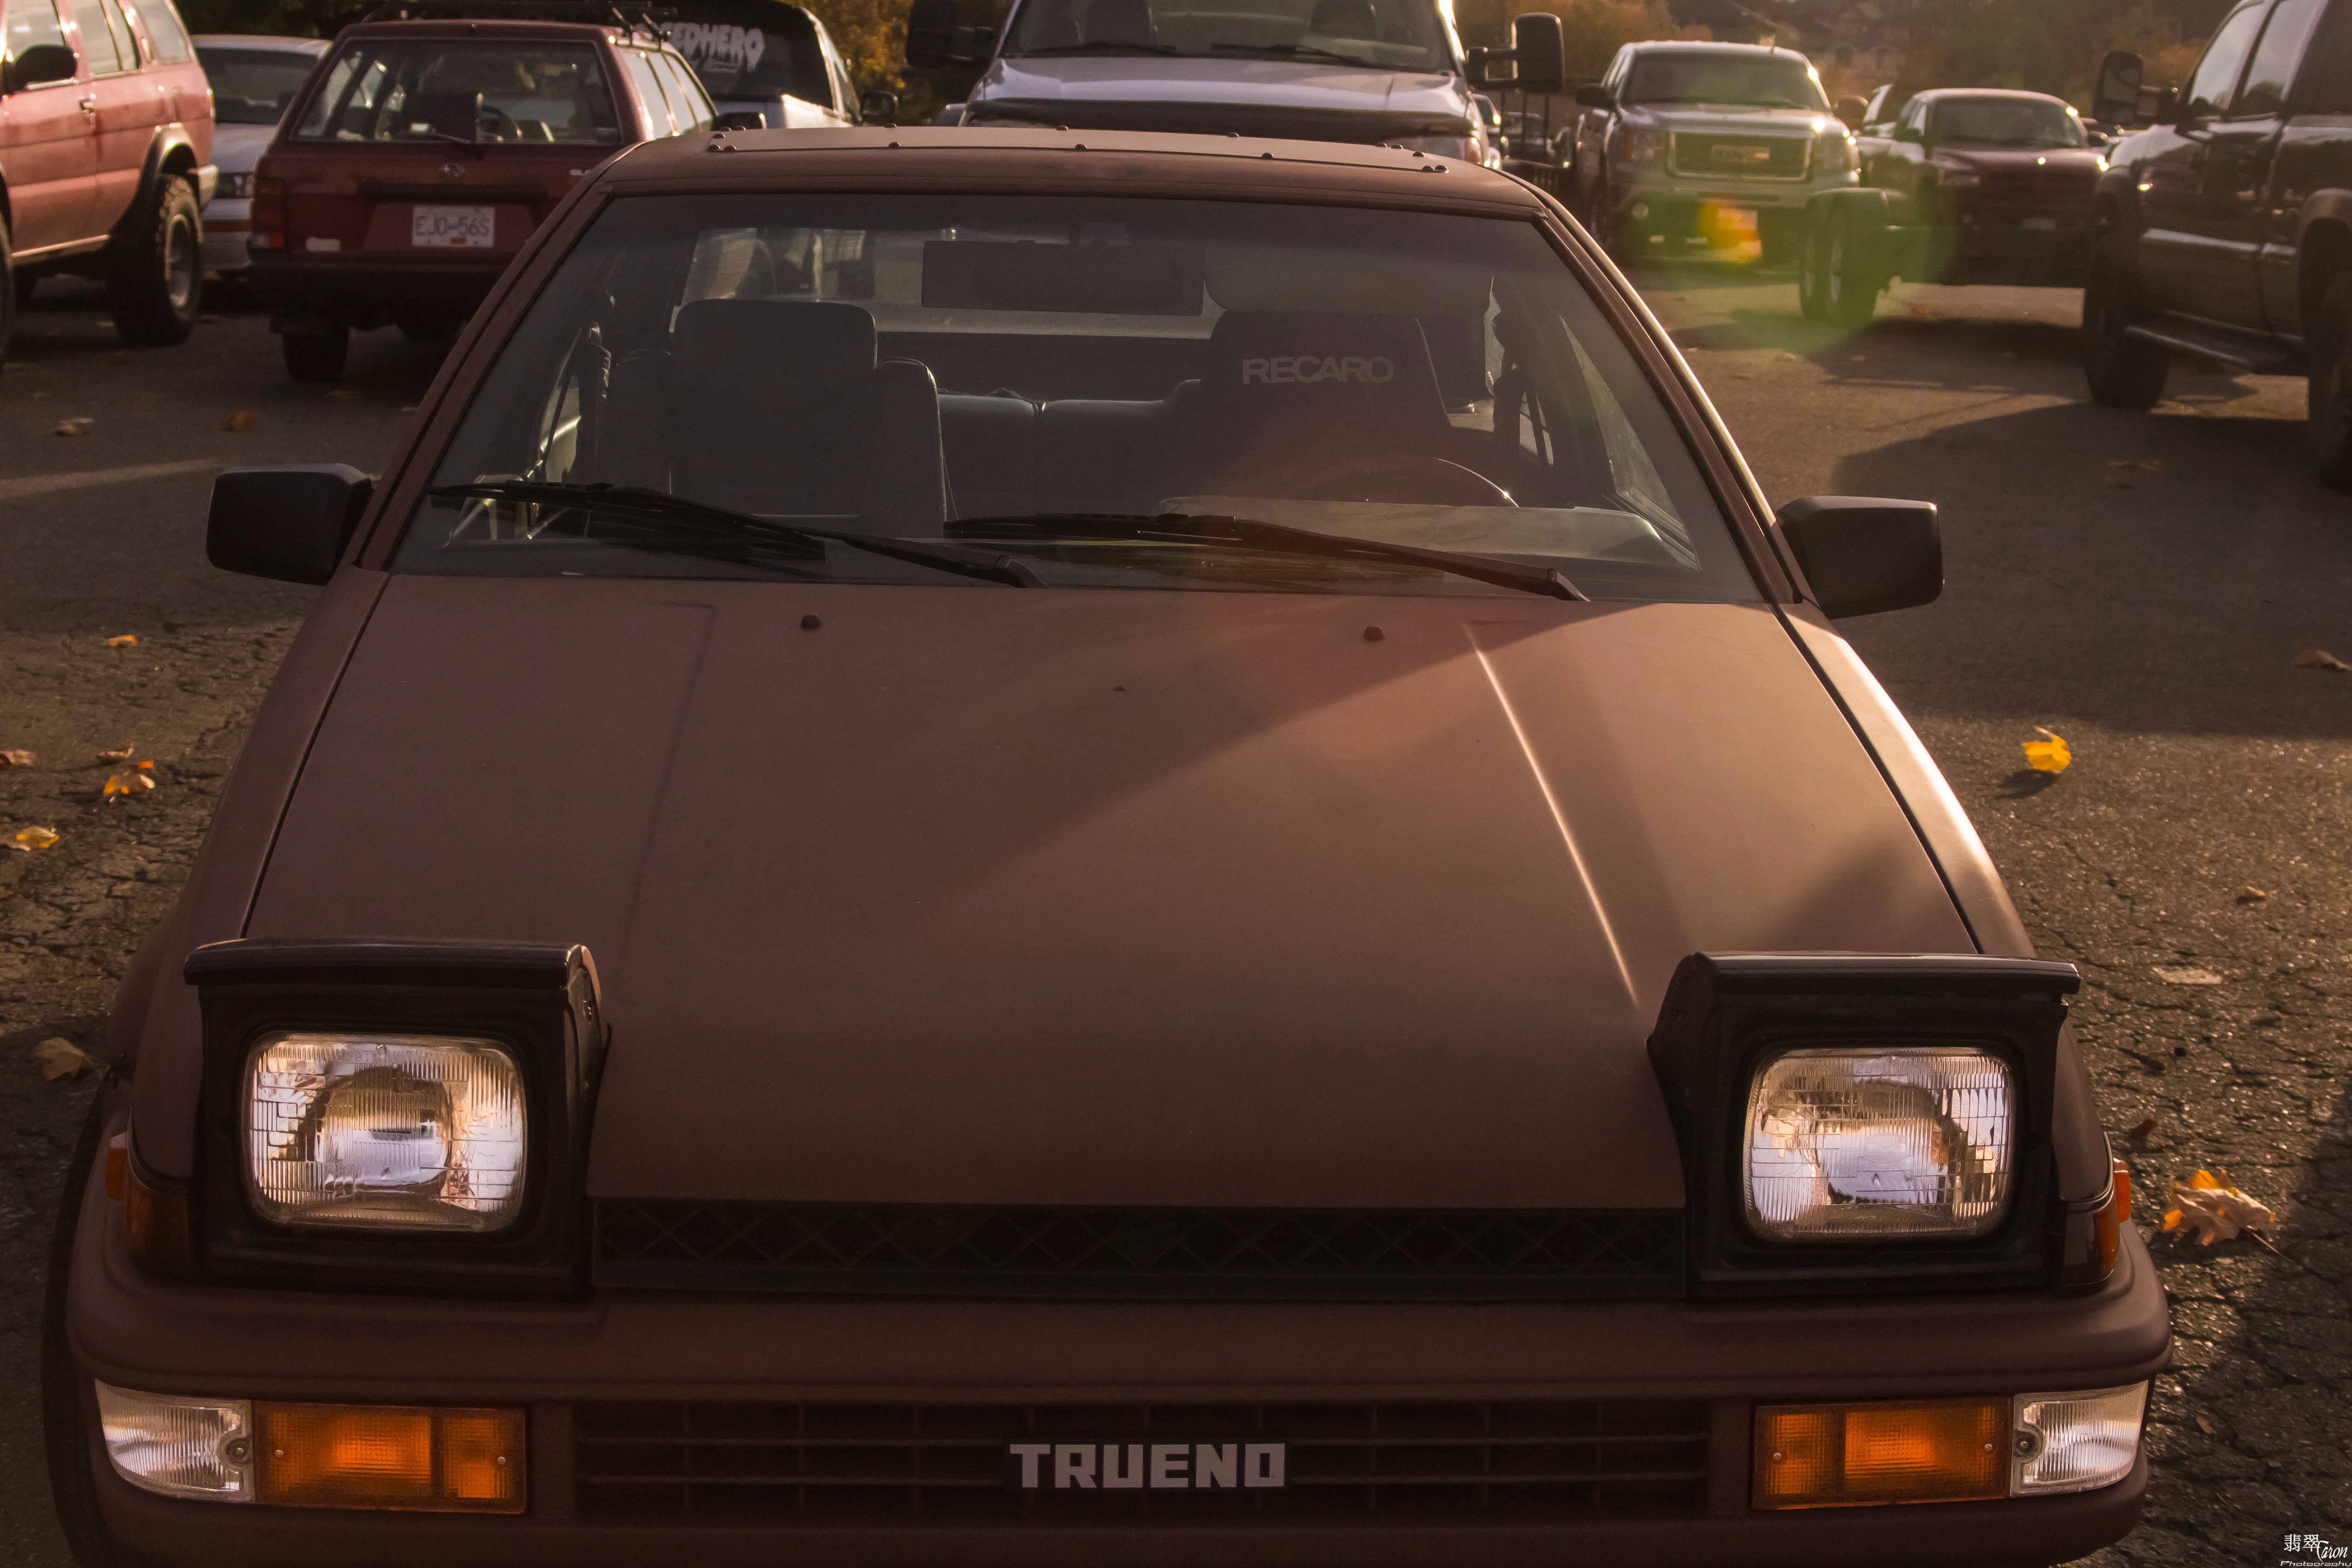 Trueno by THEAESTHETICWEEB